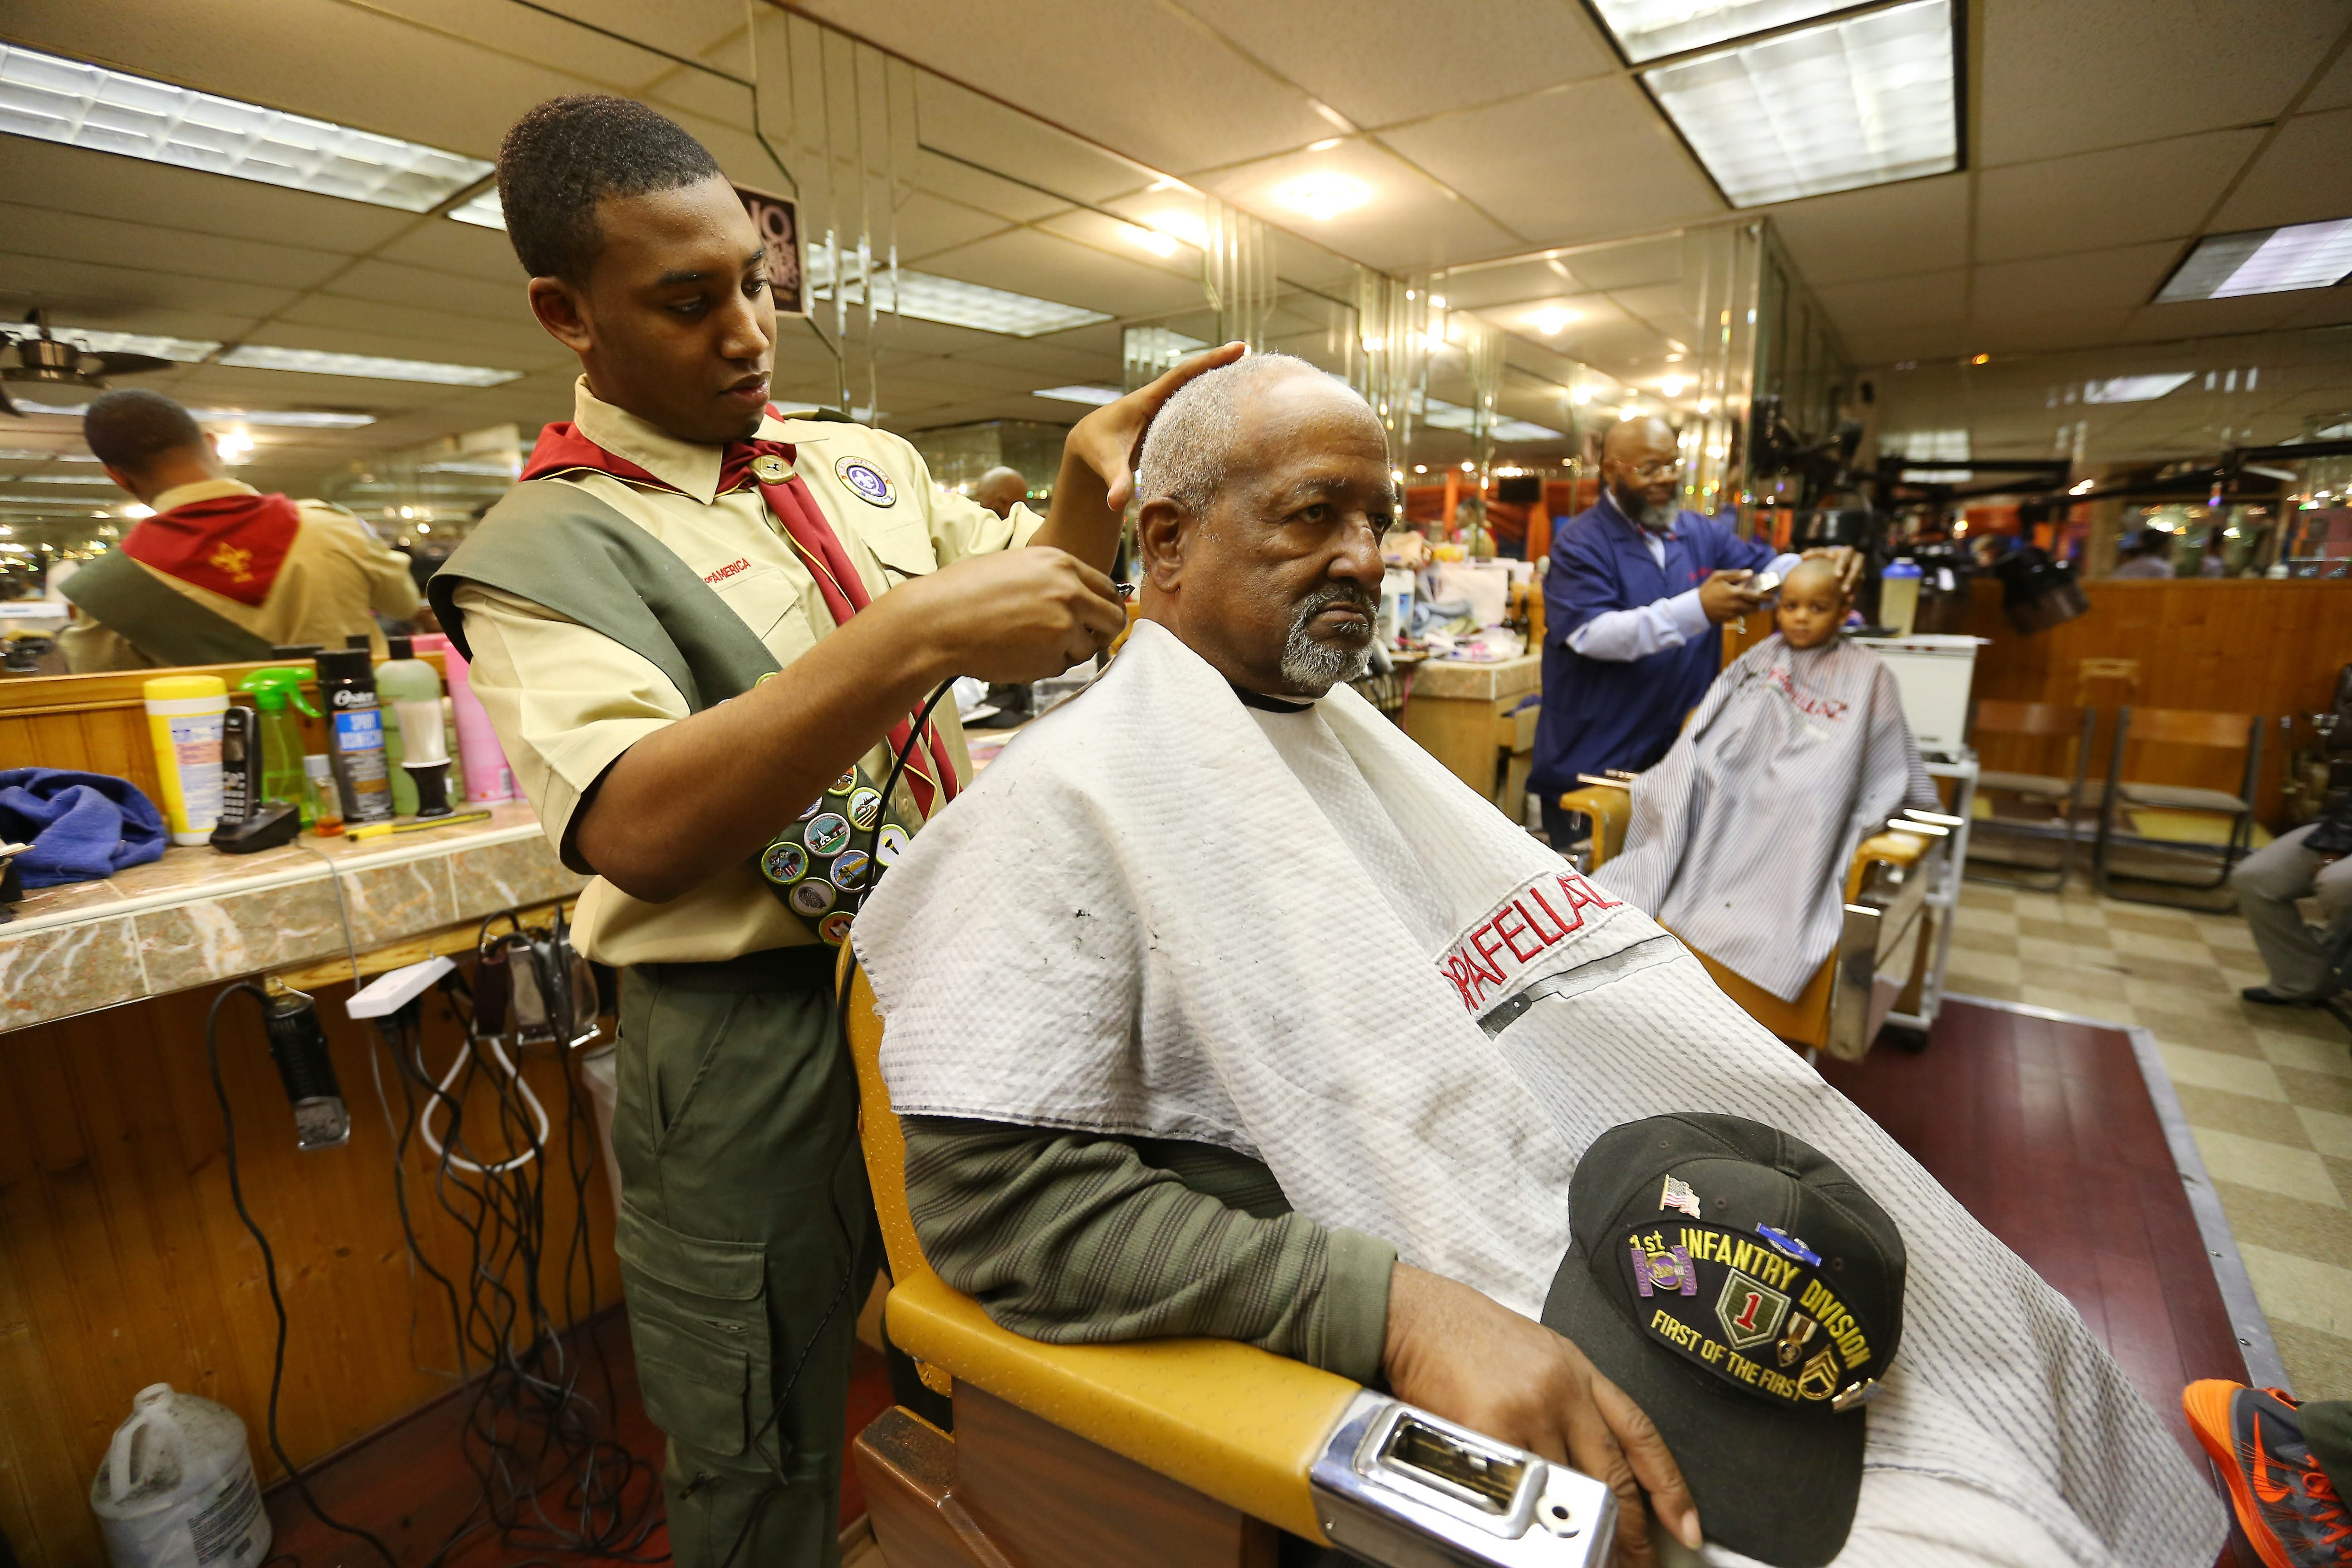 Eagle Scout candidate Justin Becton cuts the hair of Vietnam veteran and double Purple Heart recipient Hamilton A. Plummer at Chopafellaz in Buffalo on Tuesday. Justin, who works at the shop, organized haircuts for local veterans part of his Eagle Scout project.